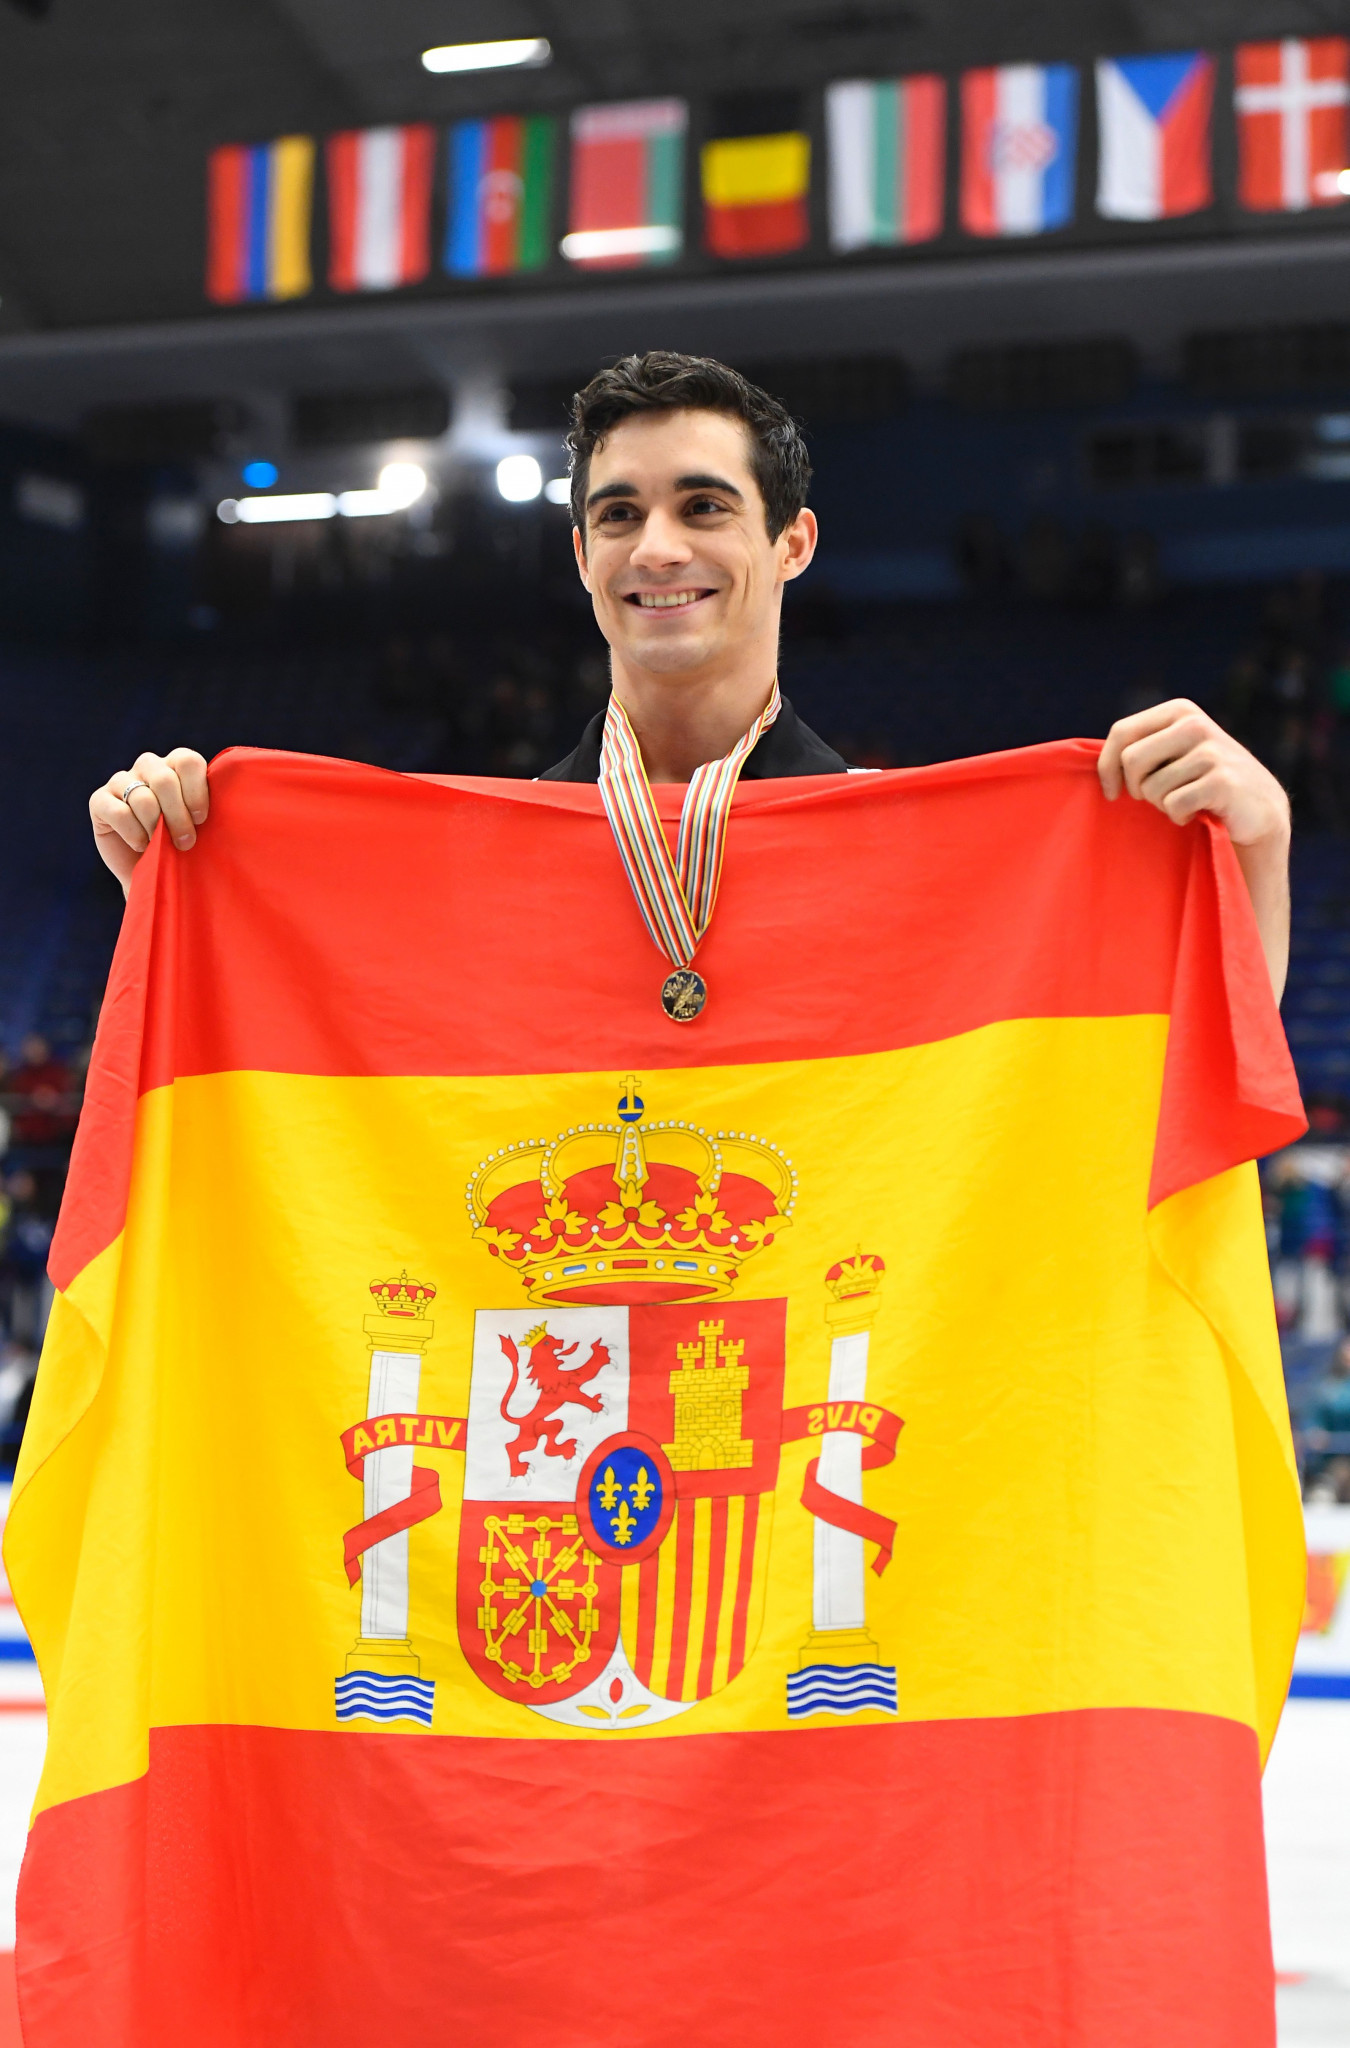 Javier Fernandez has won the last five European Figure Skating Championships men's titles ©Getty Images